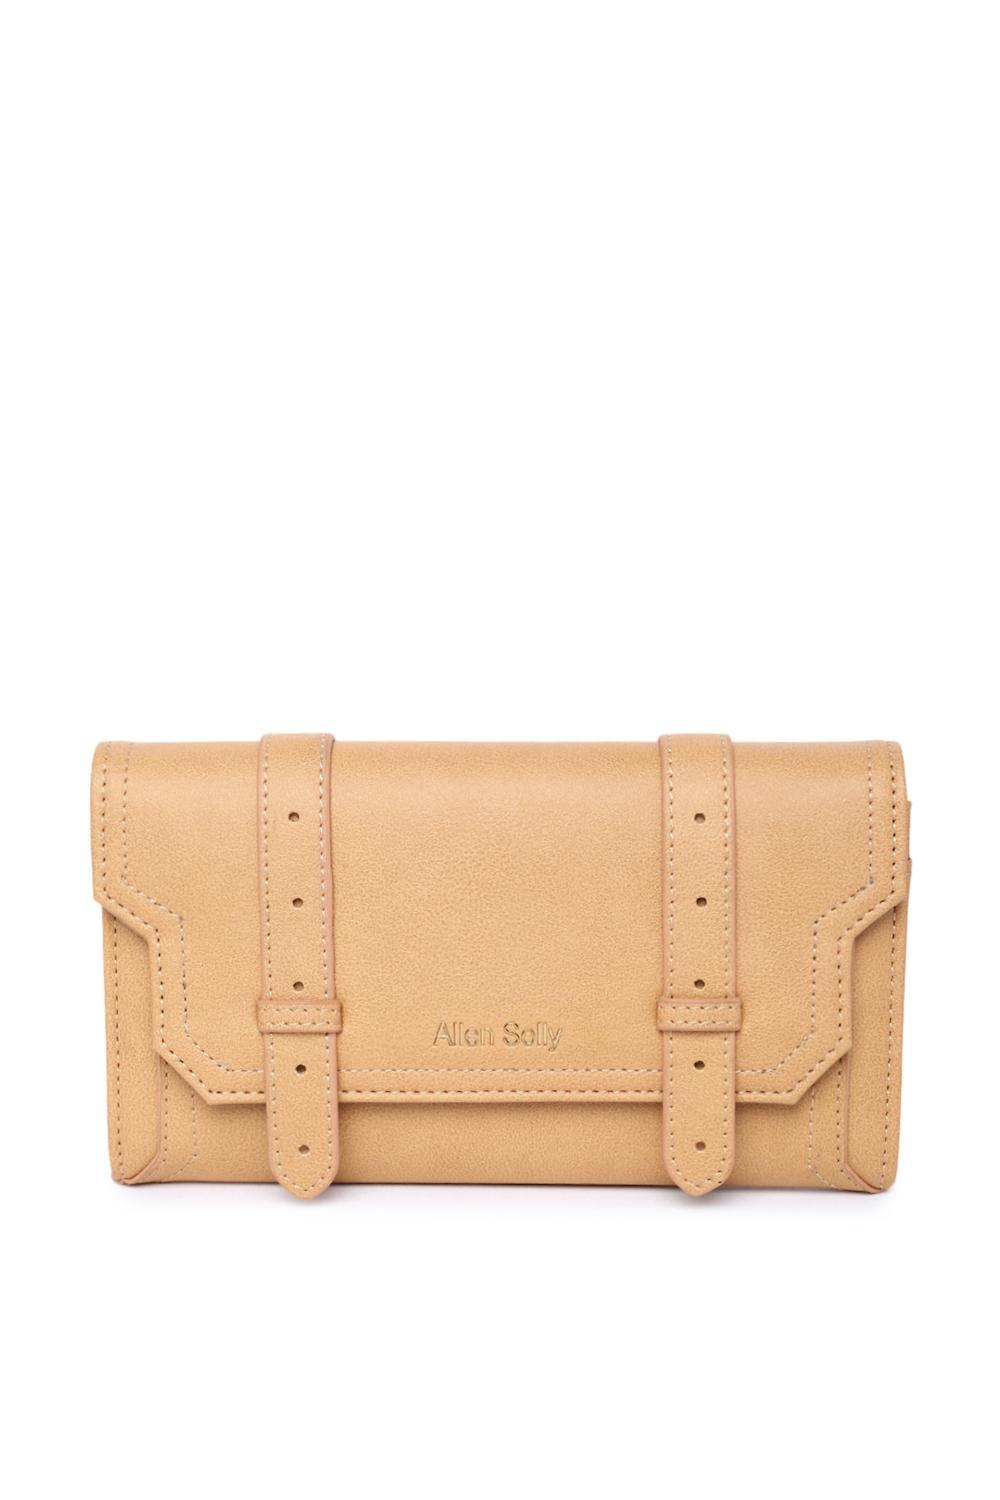 b2e240c285 Solly Fashion Accessories, Allen Solly Tan Wallet for Women at  Allensolly.com